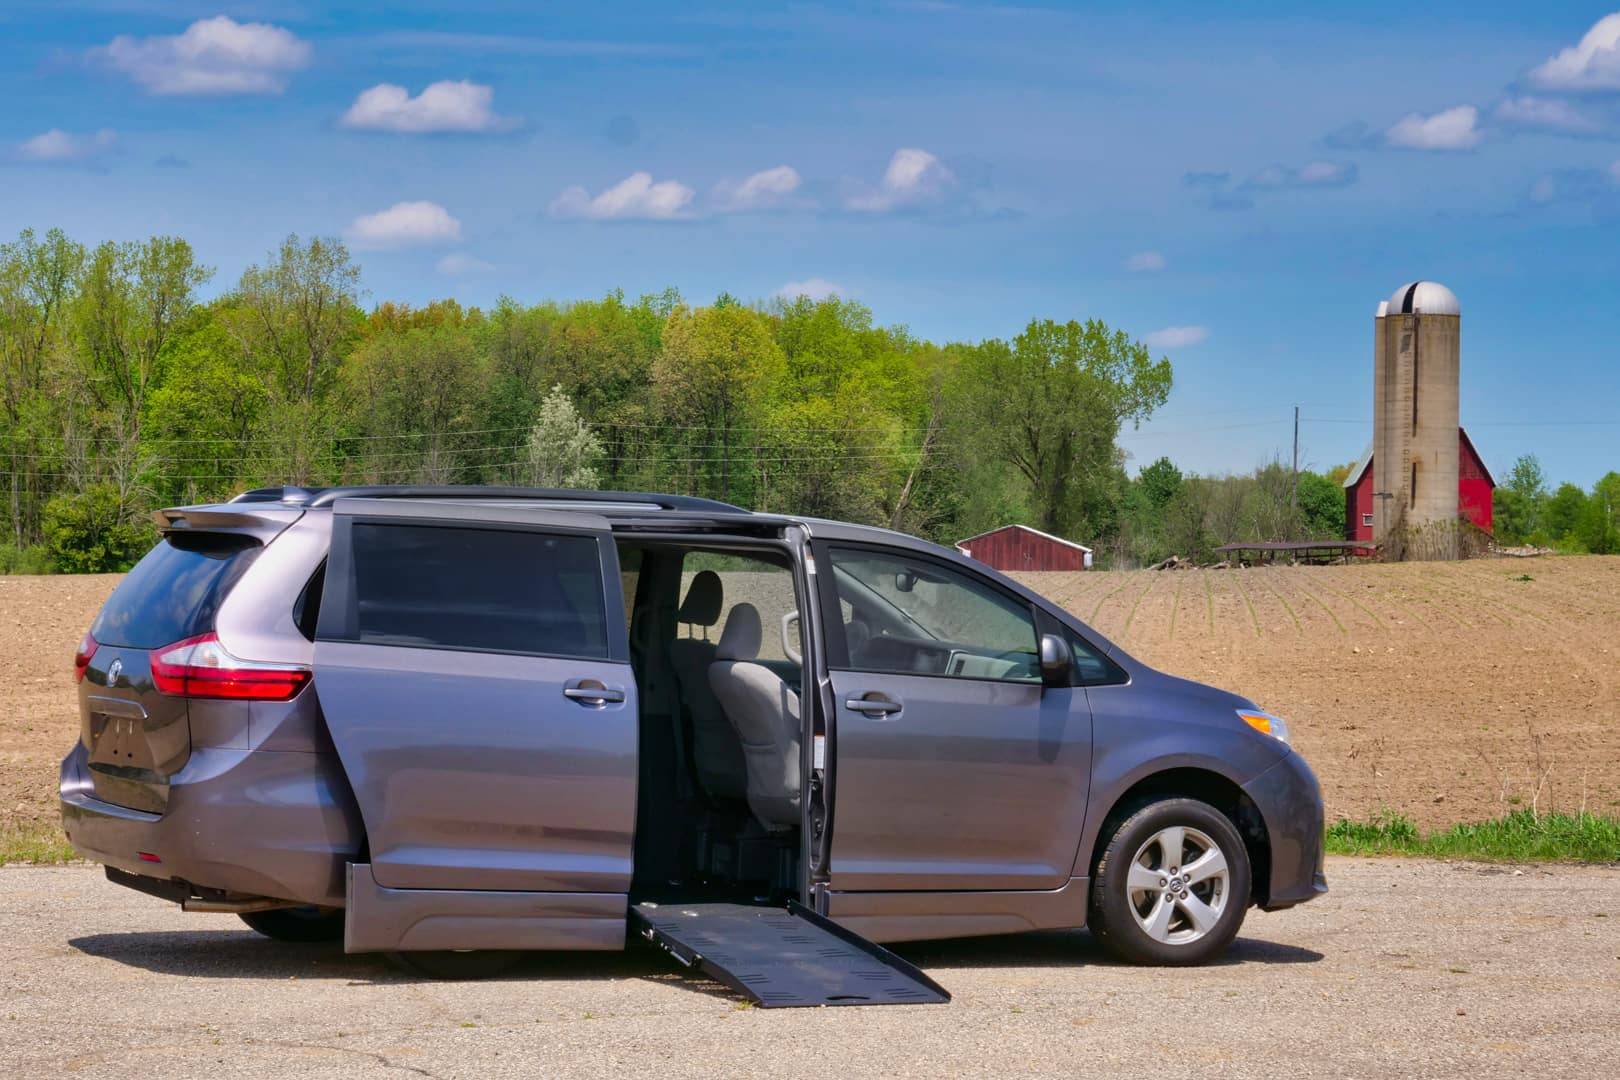 A side entry wheelchair accessible Toyota Sienna.